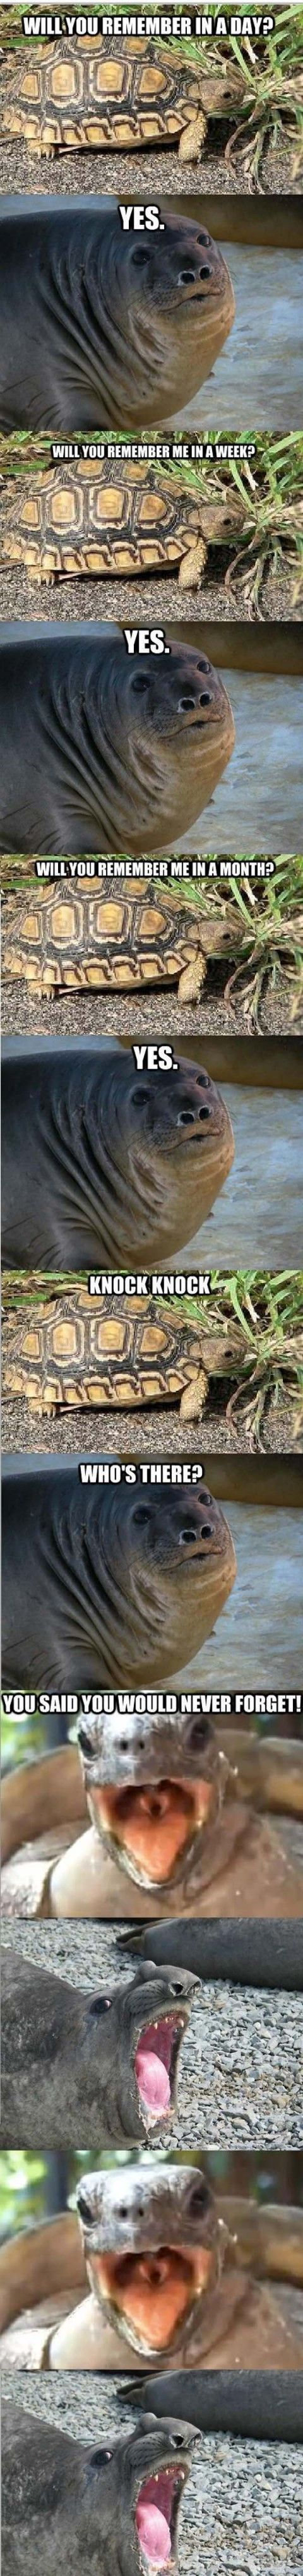 funny animals pictures with captions (56 pict) | Funny Pictures #compartirvideos #funnywhatsapp #videowatsapp